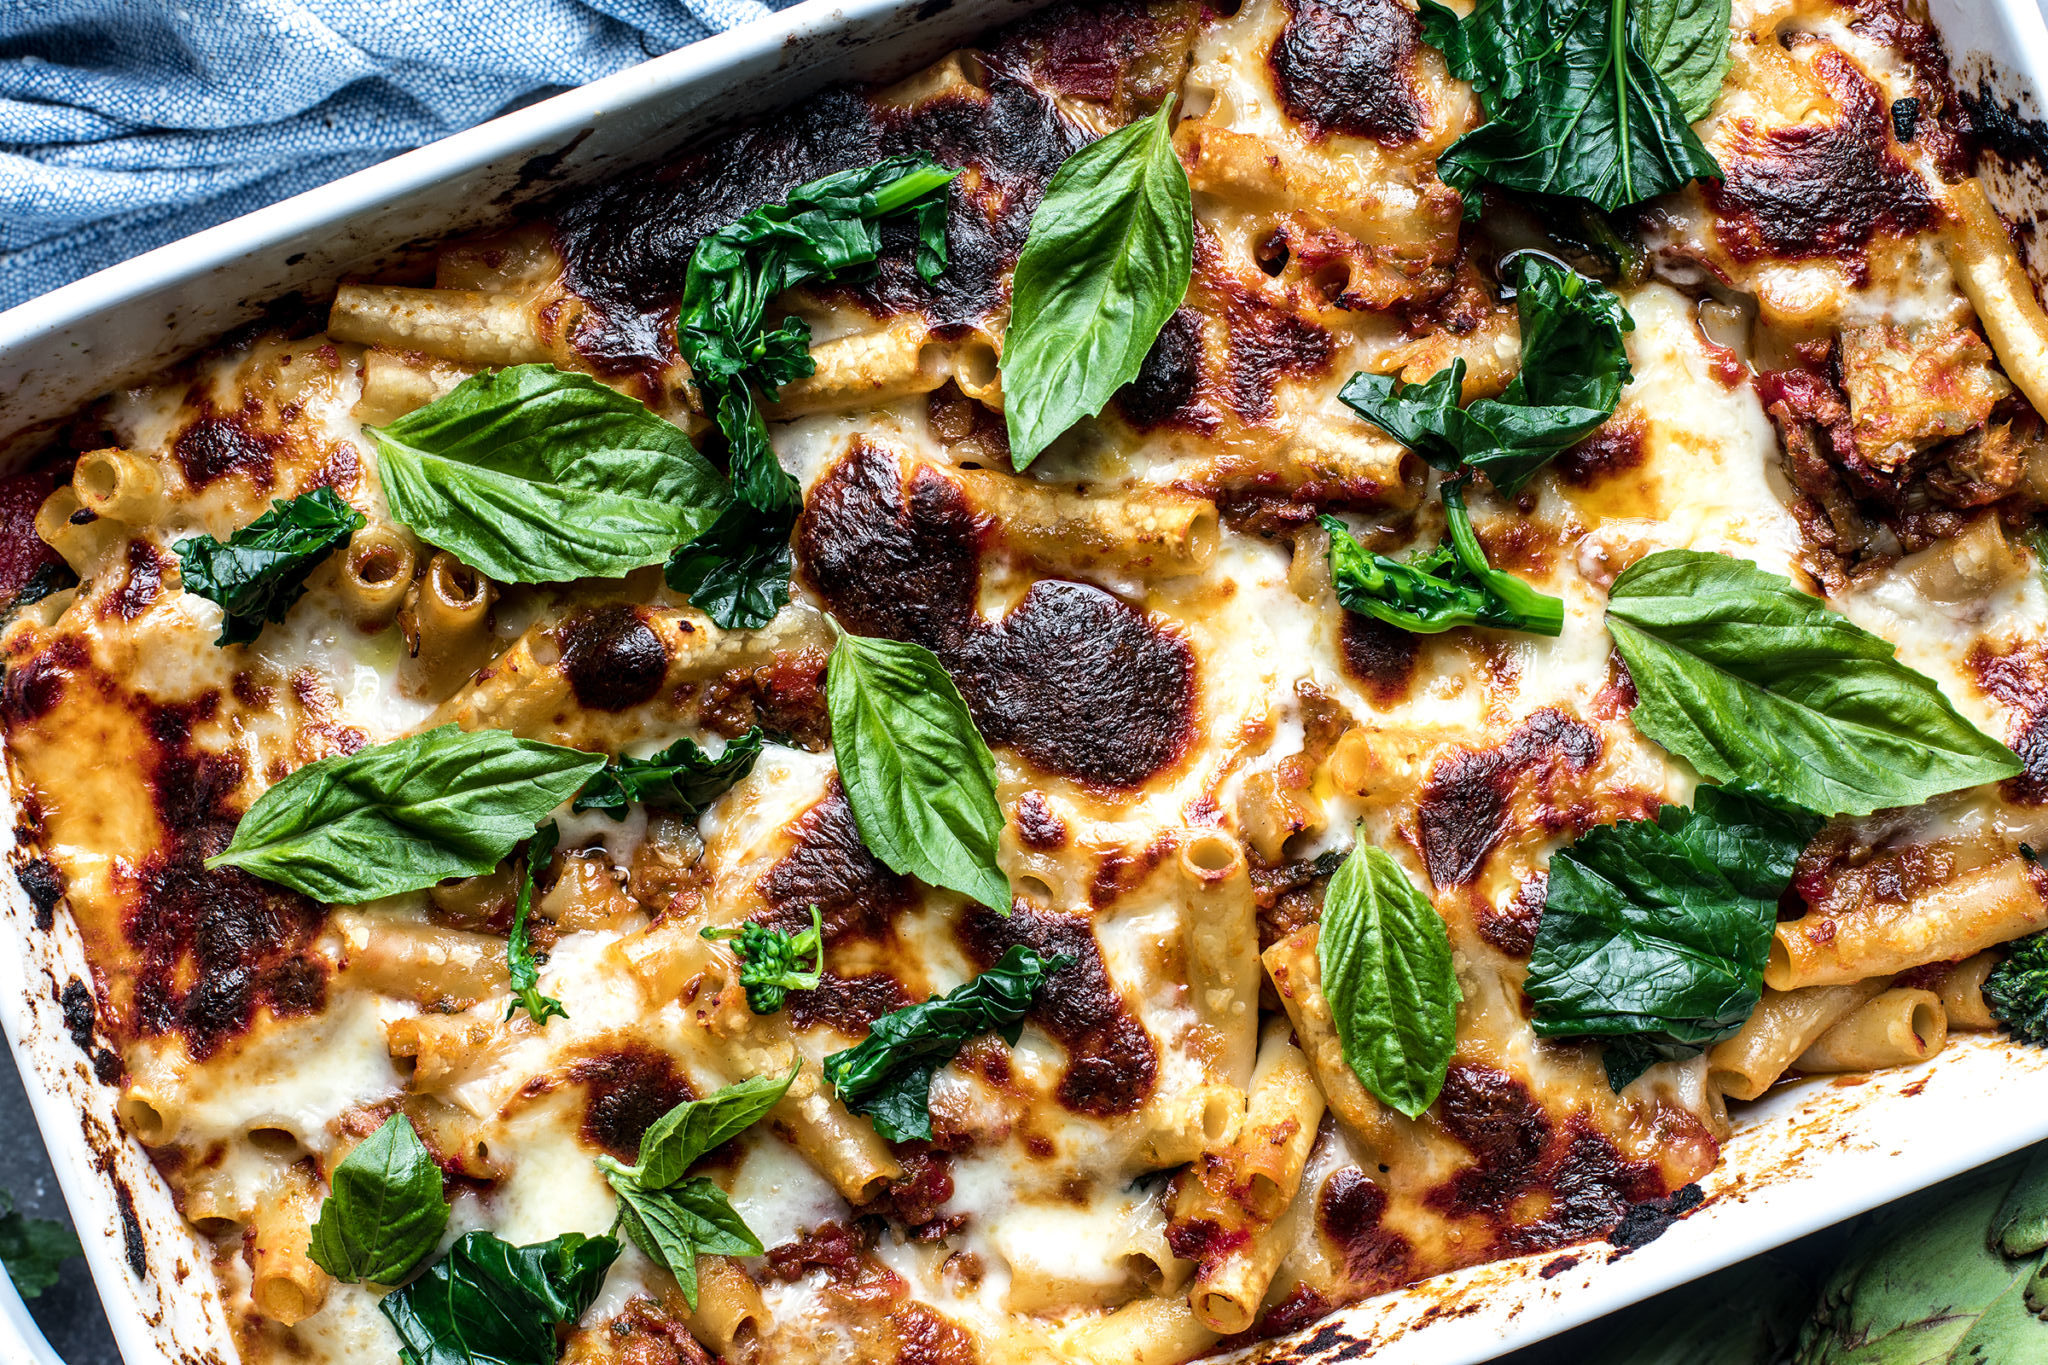 Broccoli Rabe and Artichoke Baked Ziti